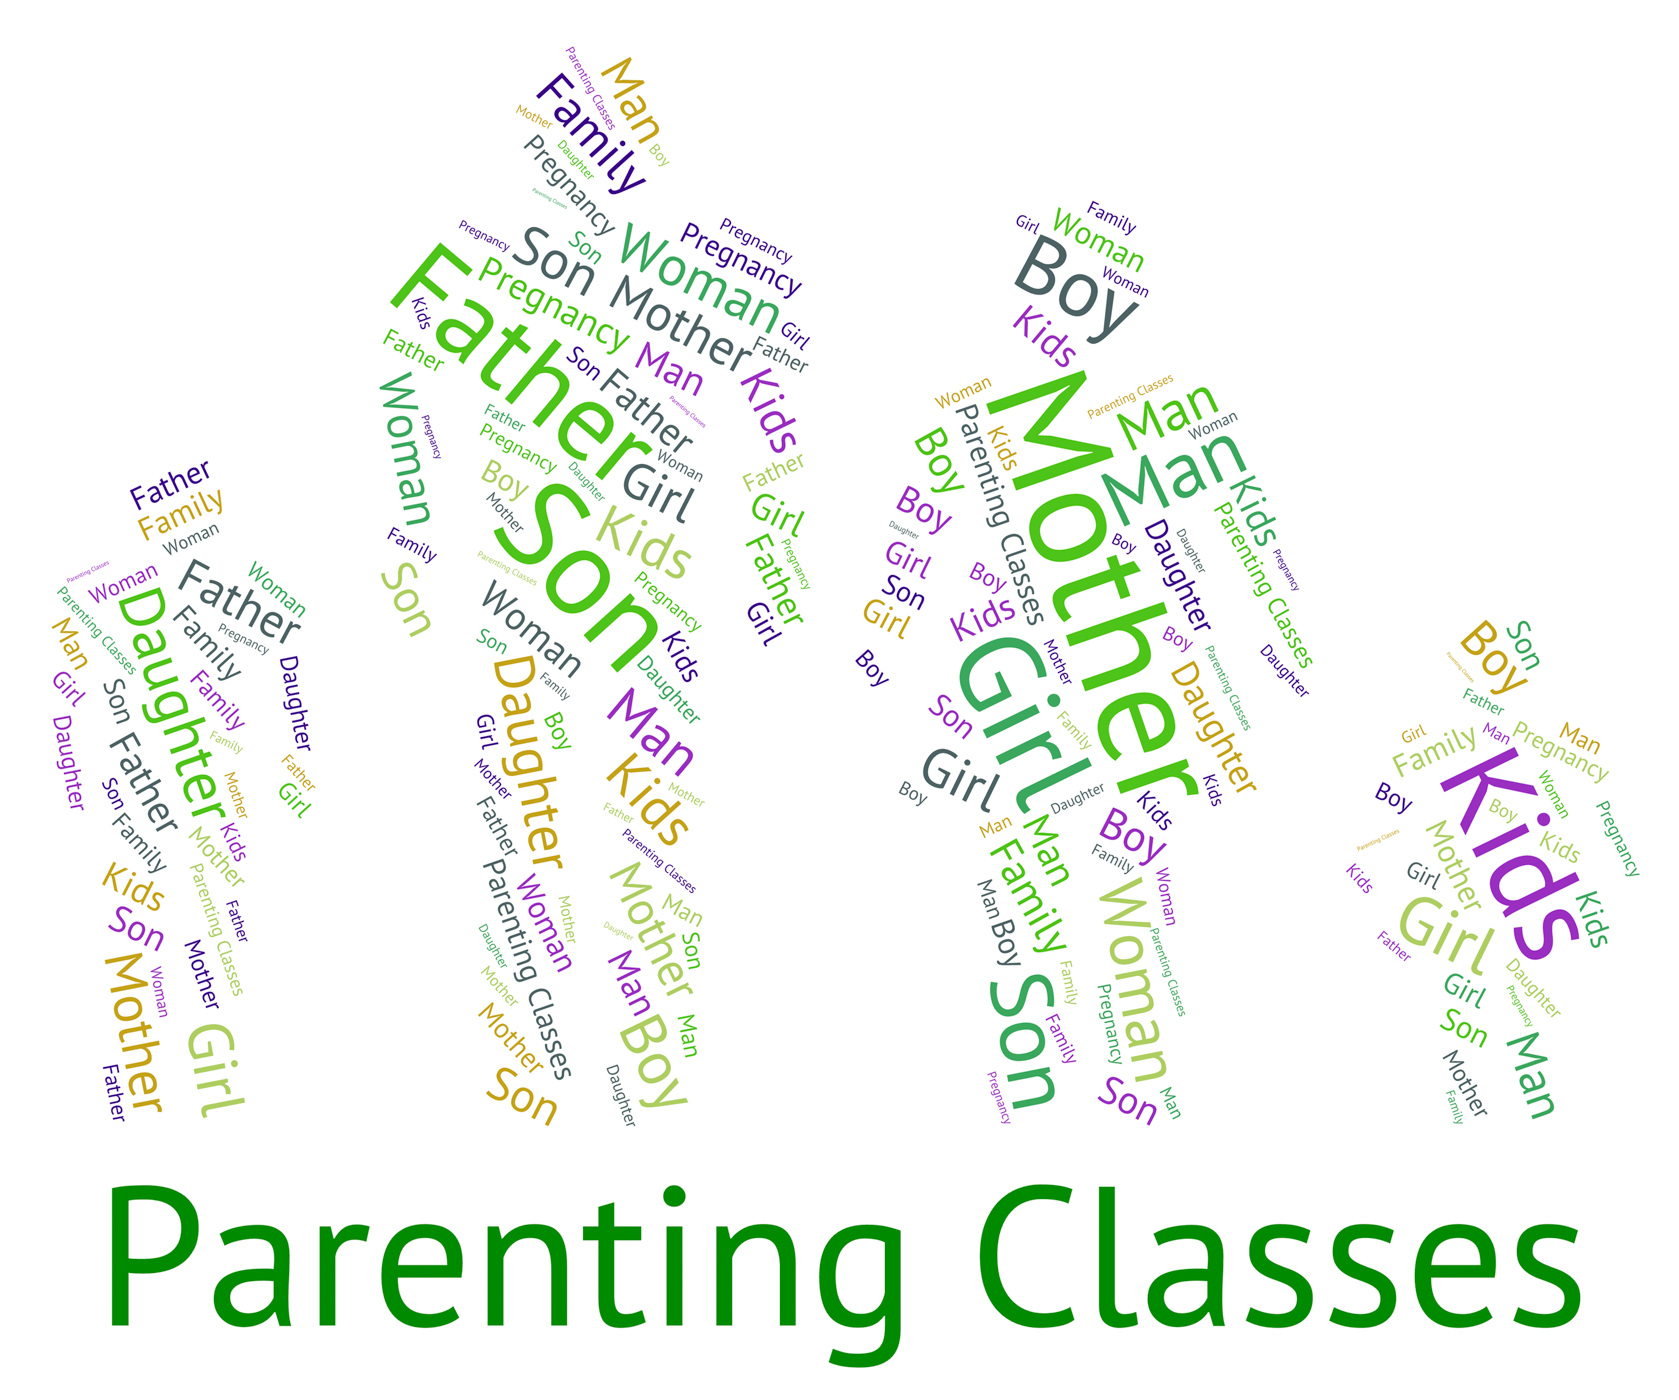 Parenting Classes Means Mother And Child And Childhood, Child, School, Motherhood, Offspring, HQ Photo